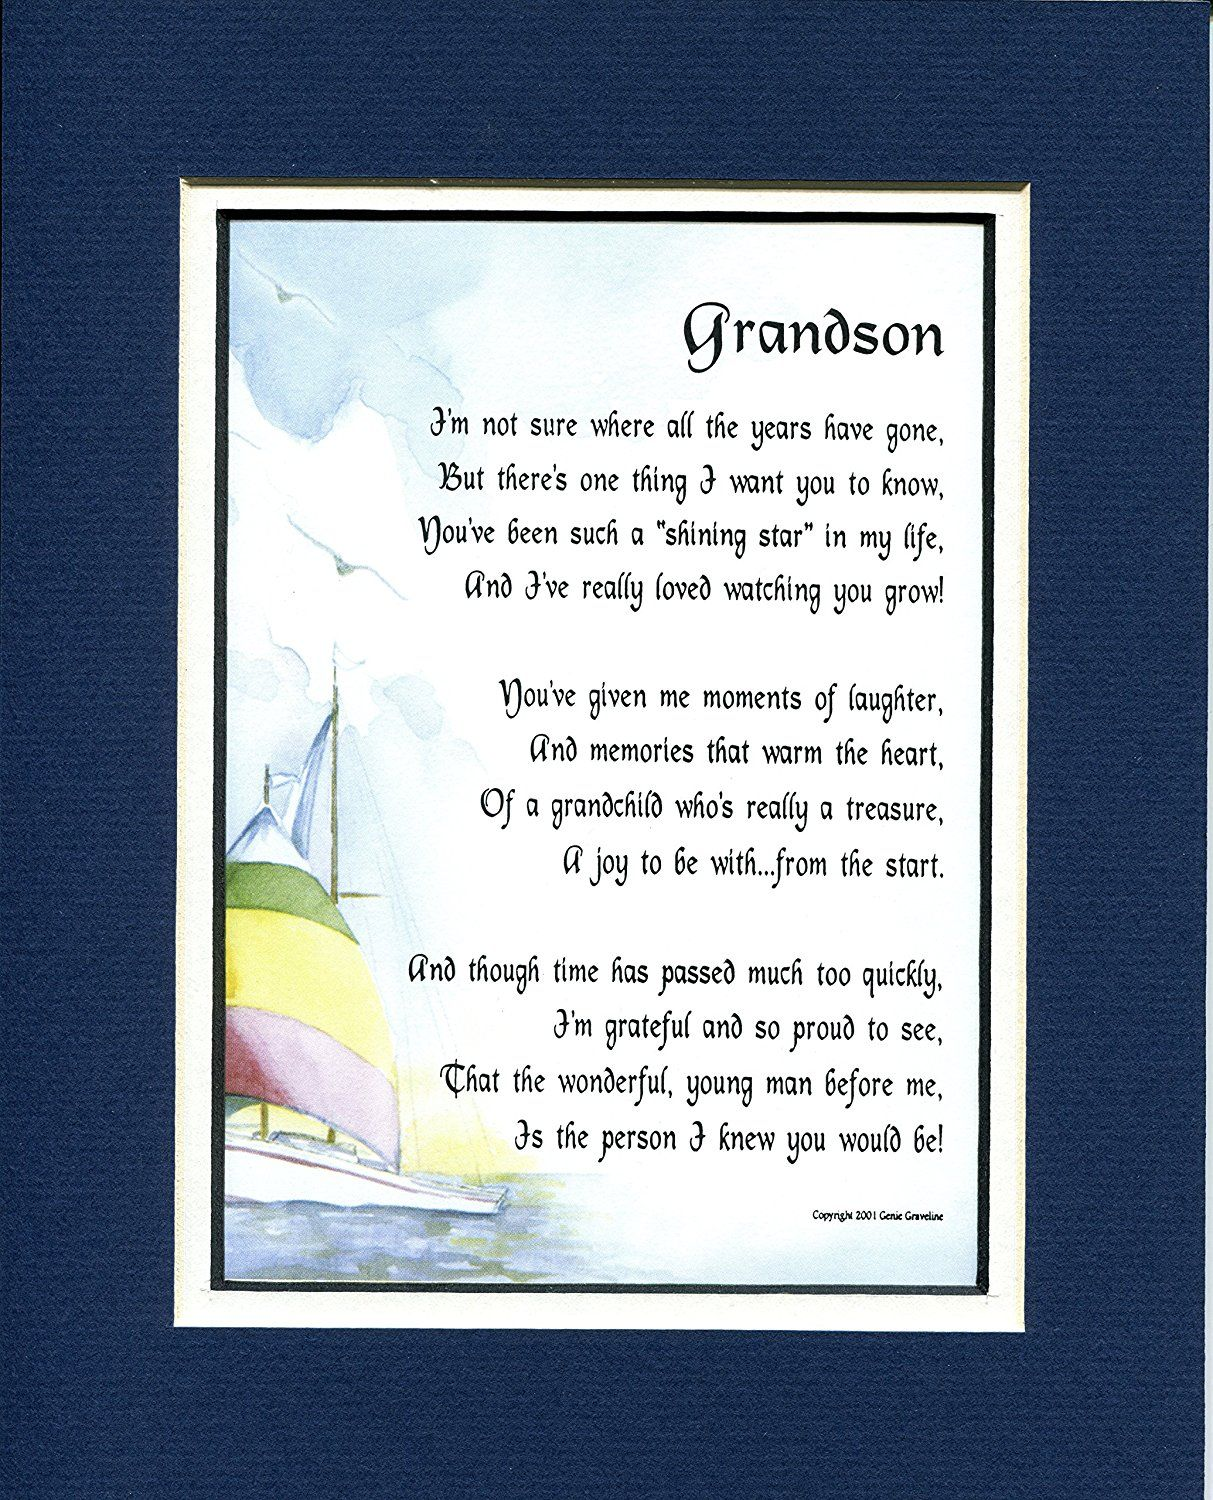 A Gift For A Grandson, #44, 8x10 Poem, Double-matted In Navy/White And Enhanced With Watercolor